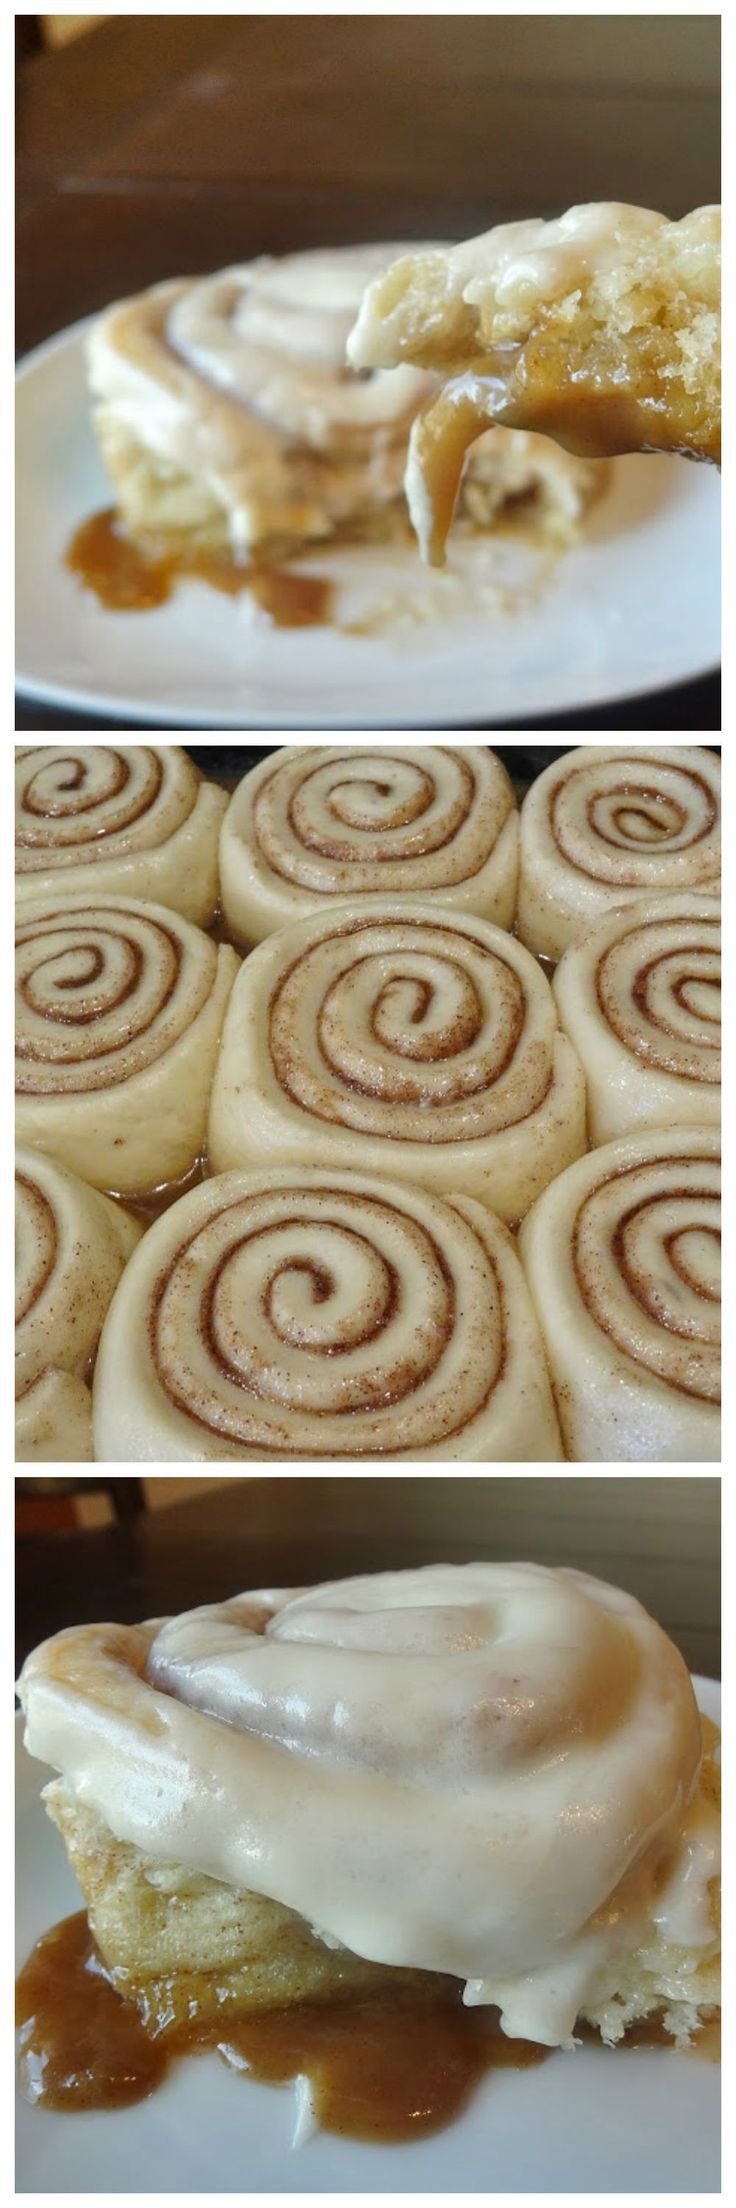 THE best Cinnamon Rolls in an Ice Cream Caramel Sauce. Get ready to throw out your favorite recipe and try these!